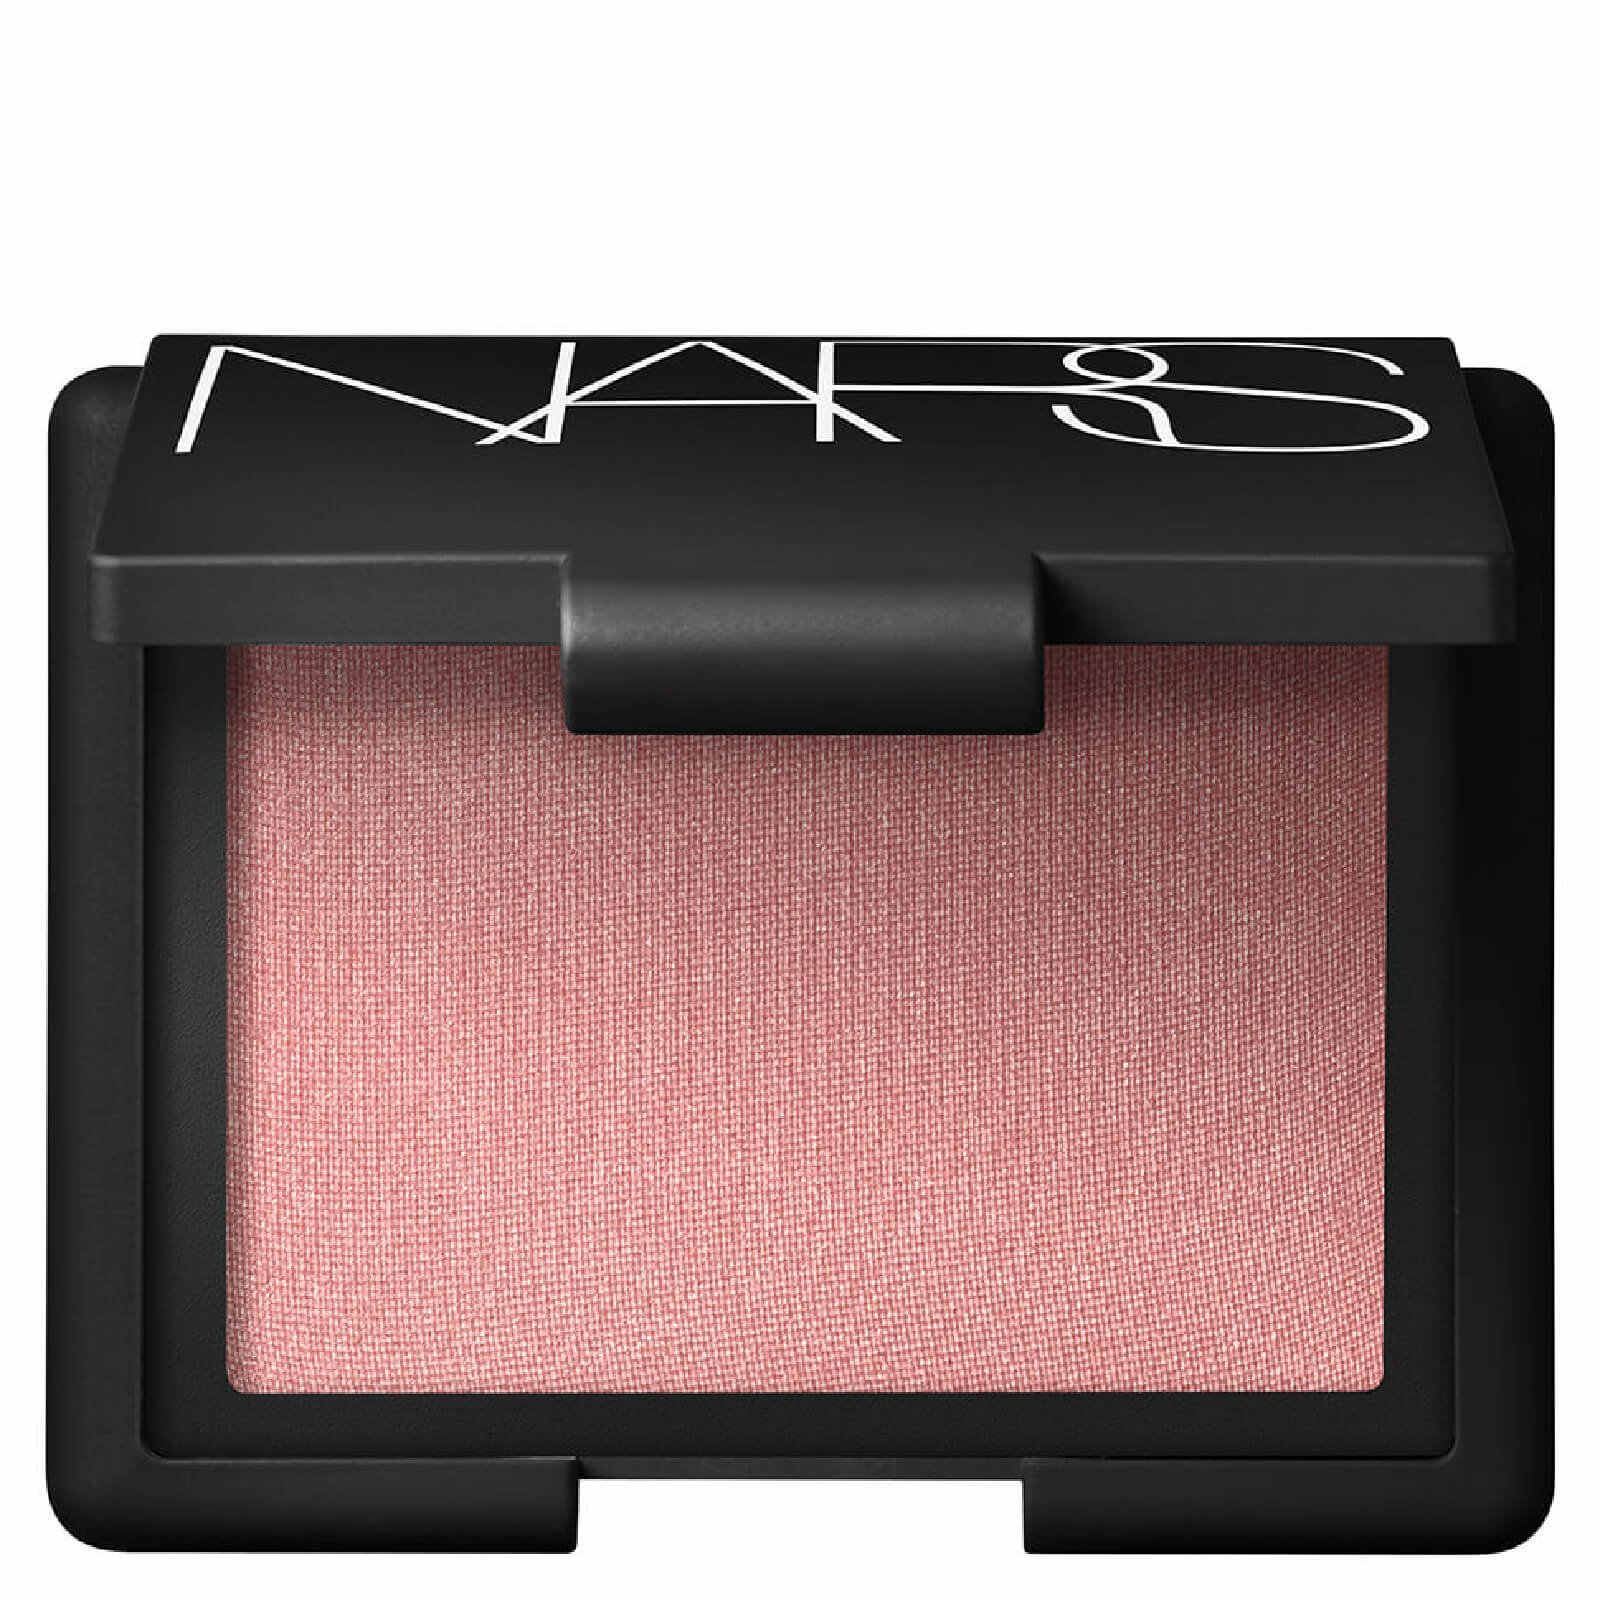 colorete-nars. El tono de colorete perfecto